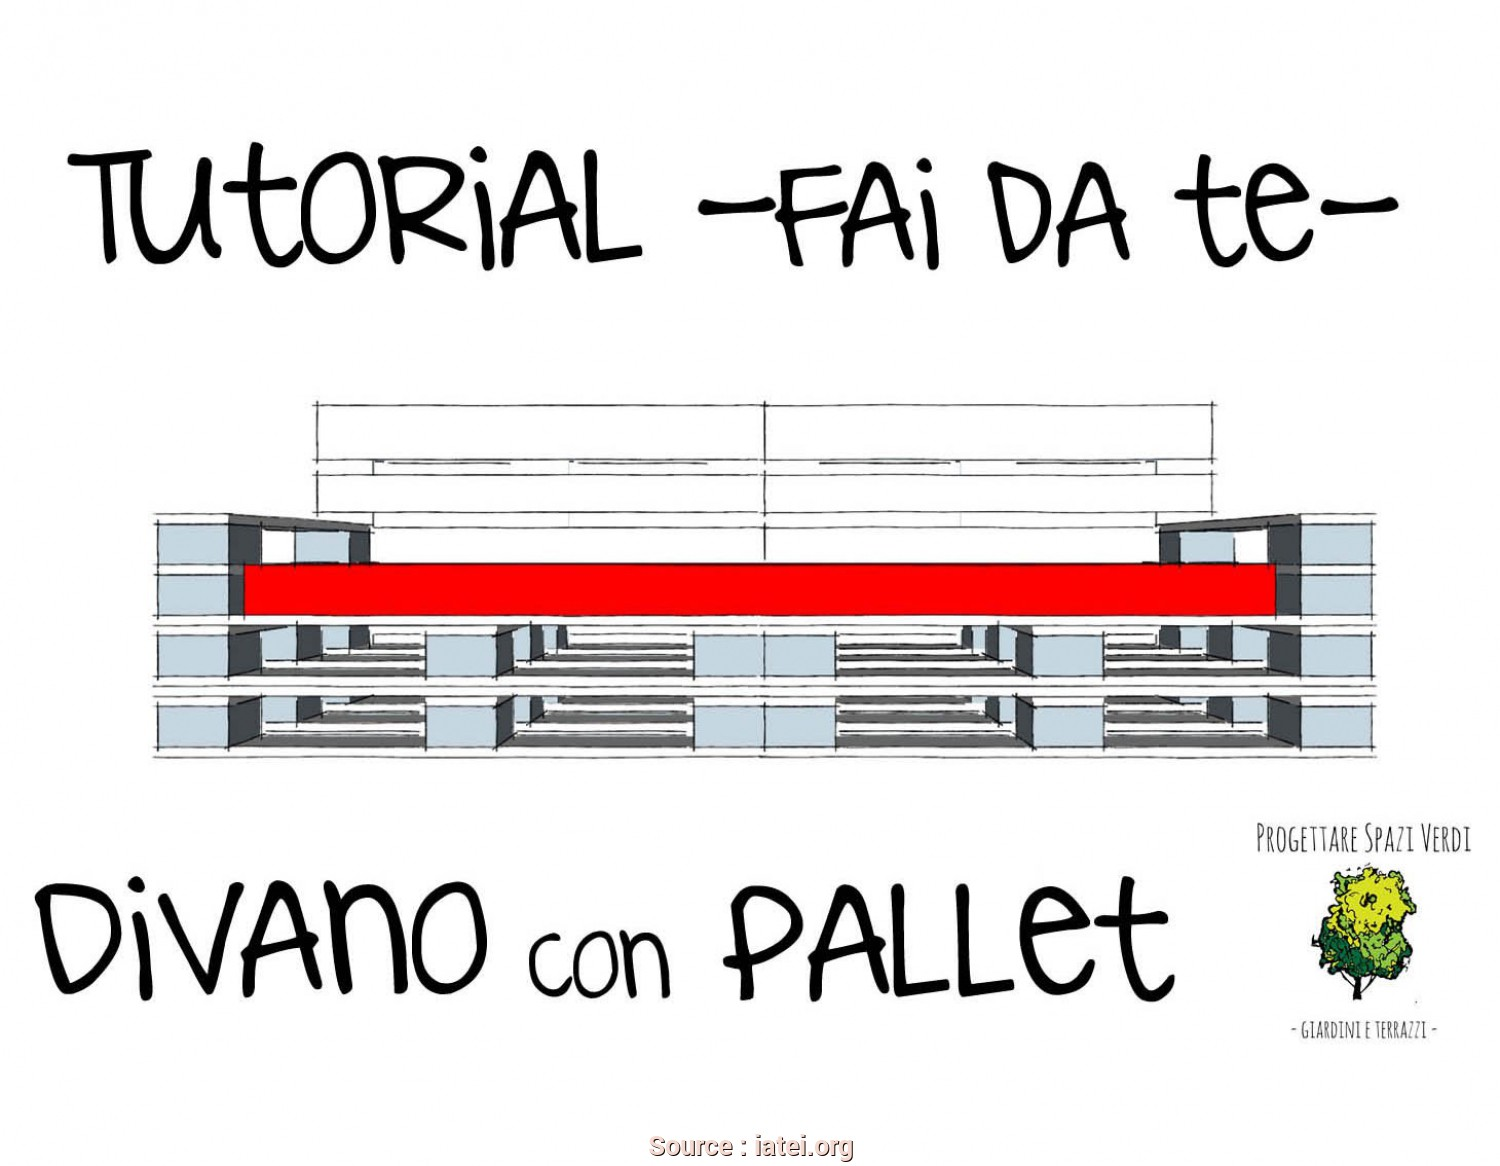 Superiore 5 Divani In Pallet Tutorial